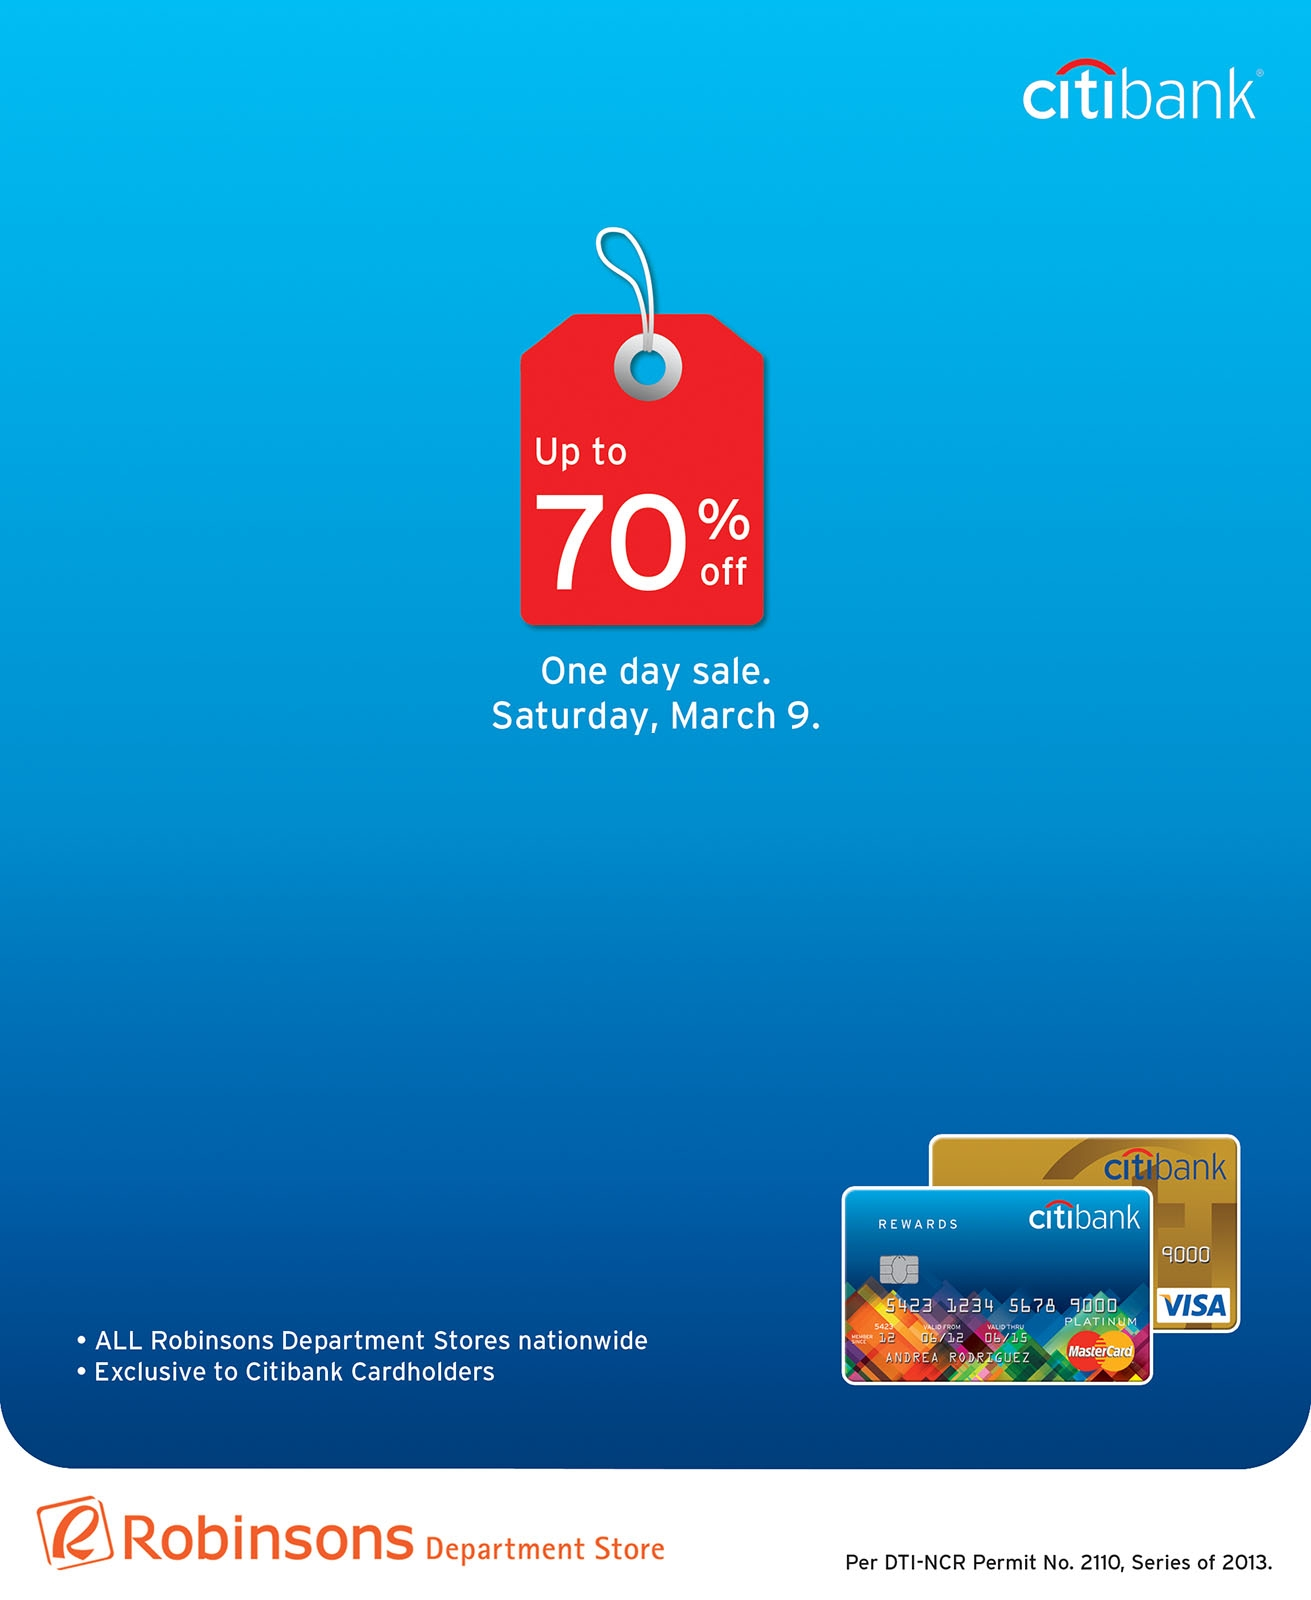 Citibank Promo: One-day exclusive sale for Citibank cardholders March 2013